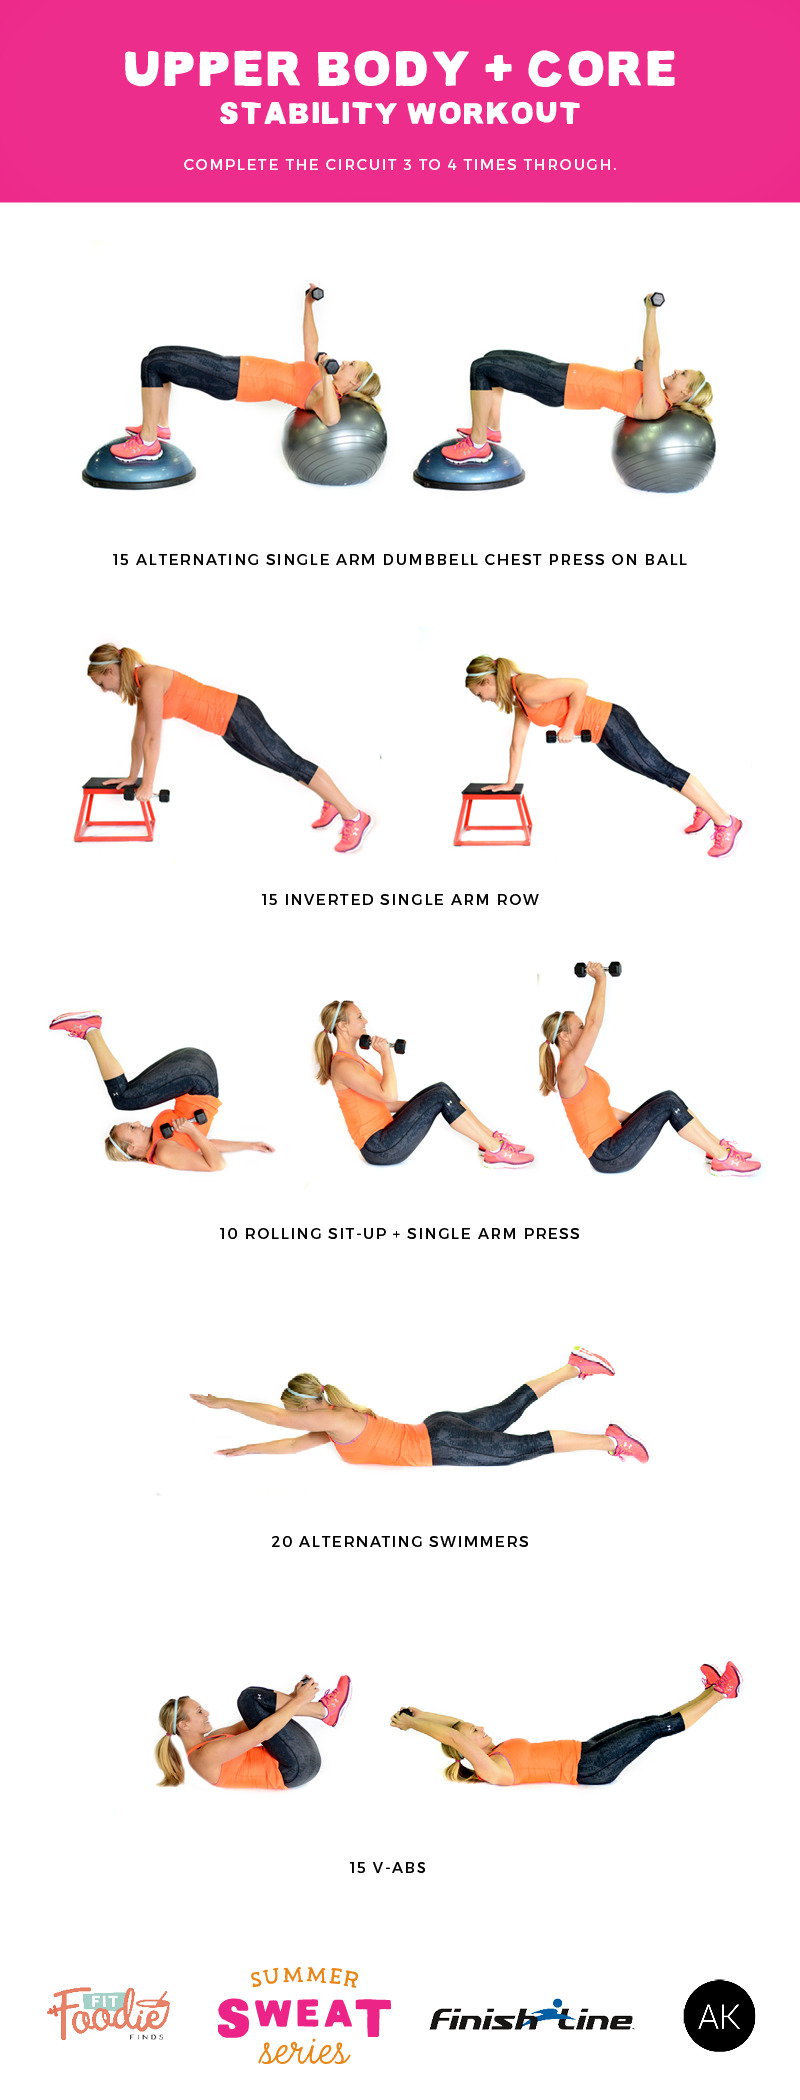 Do this stability workout that combines upper body ...